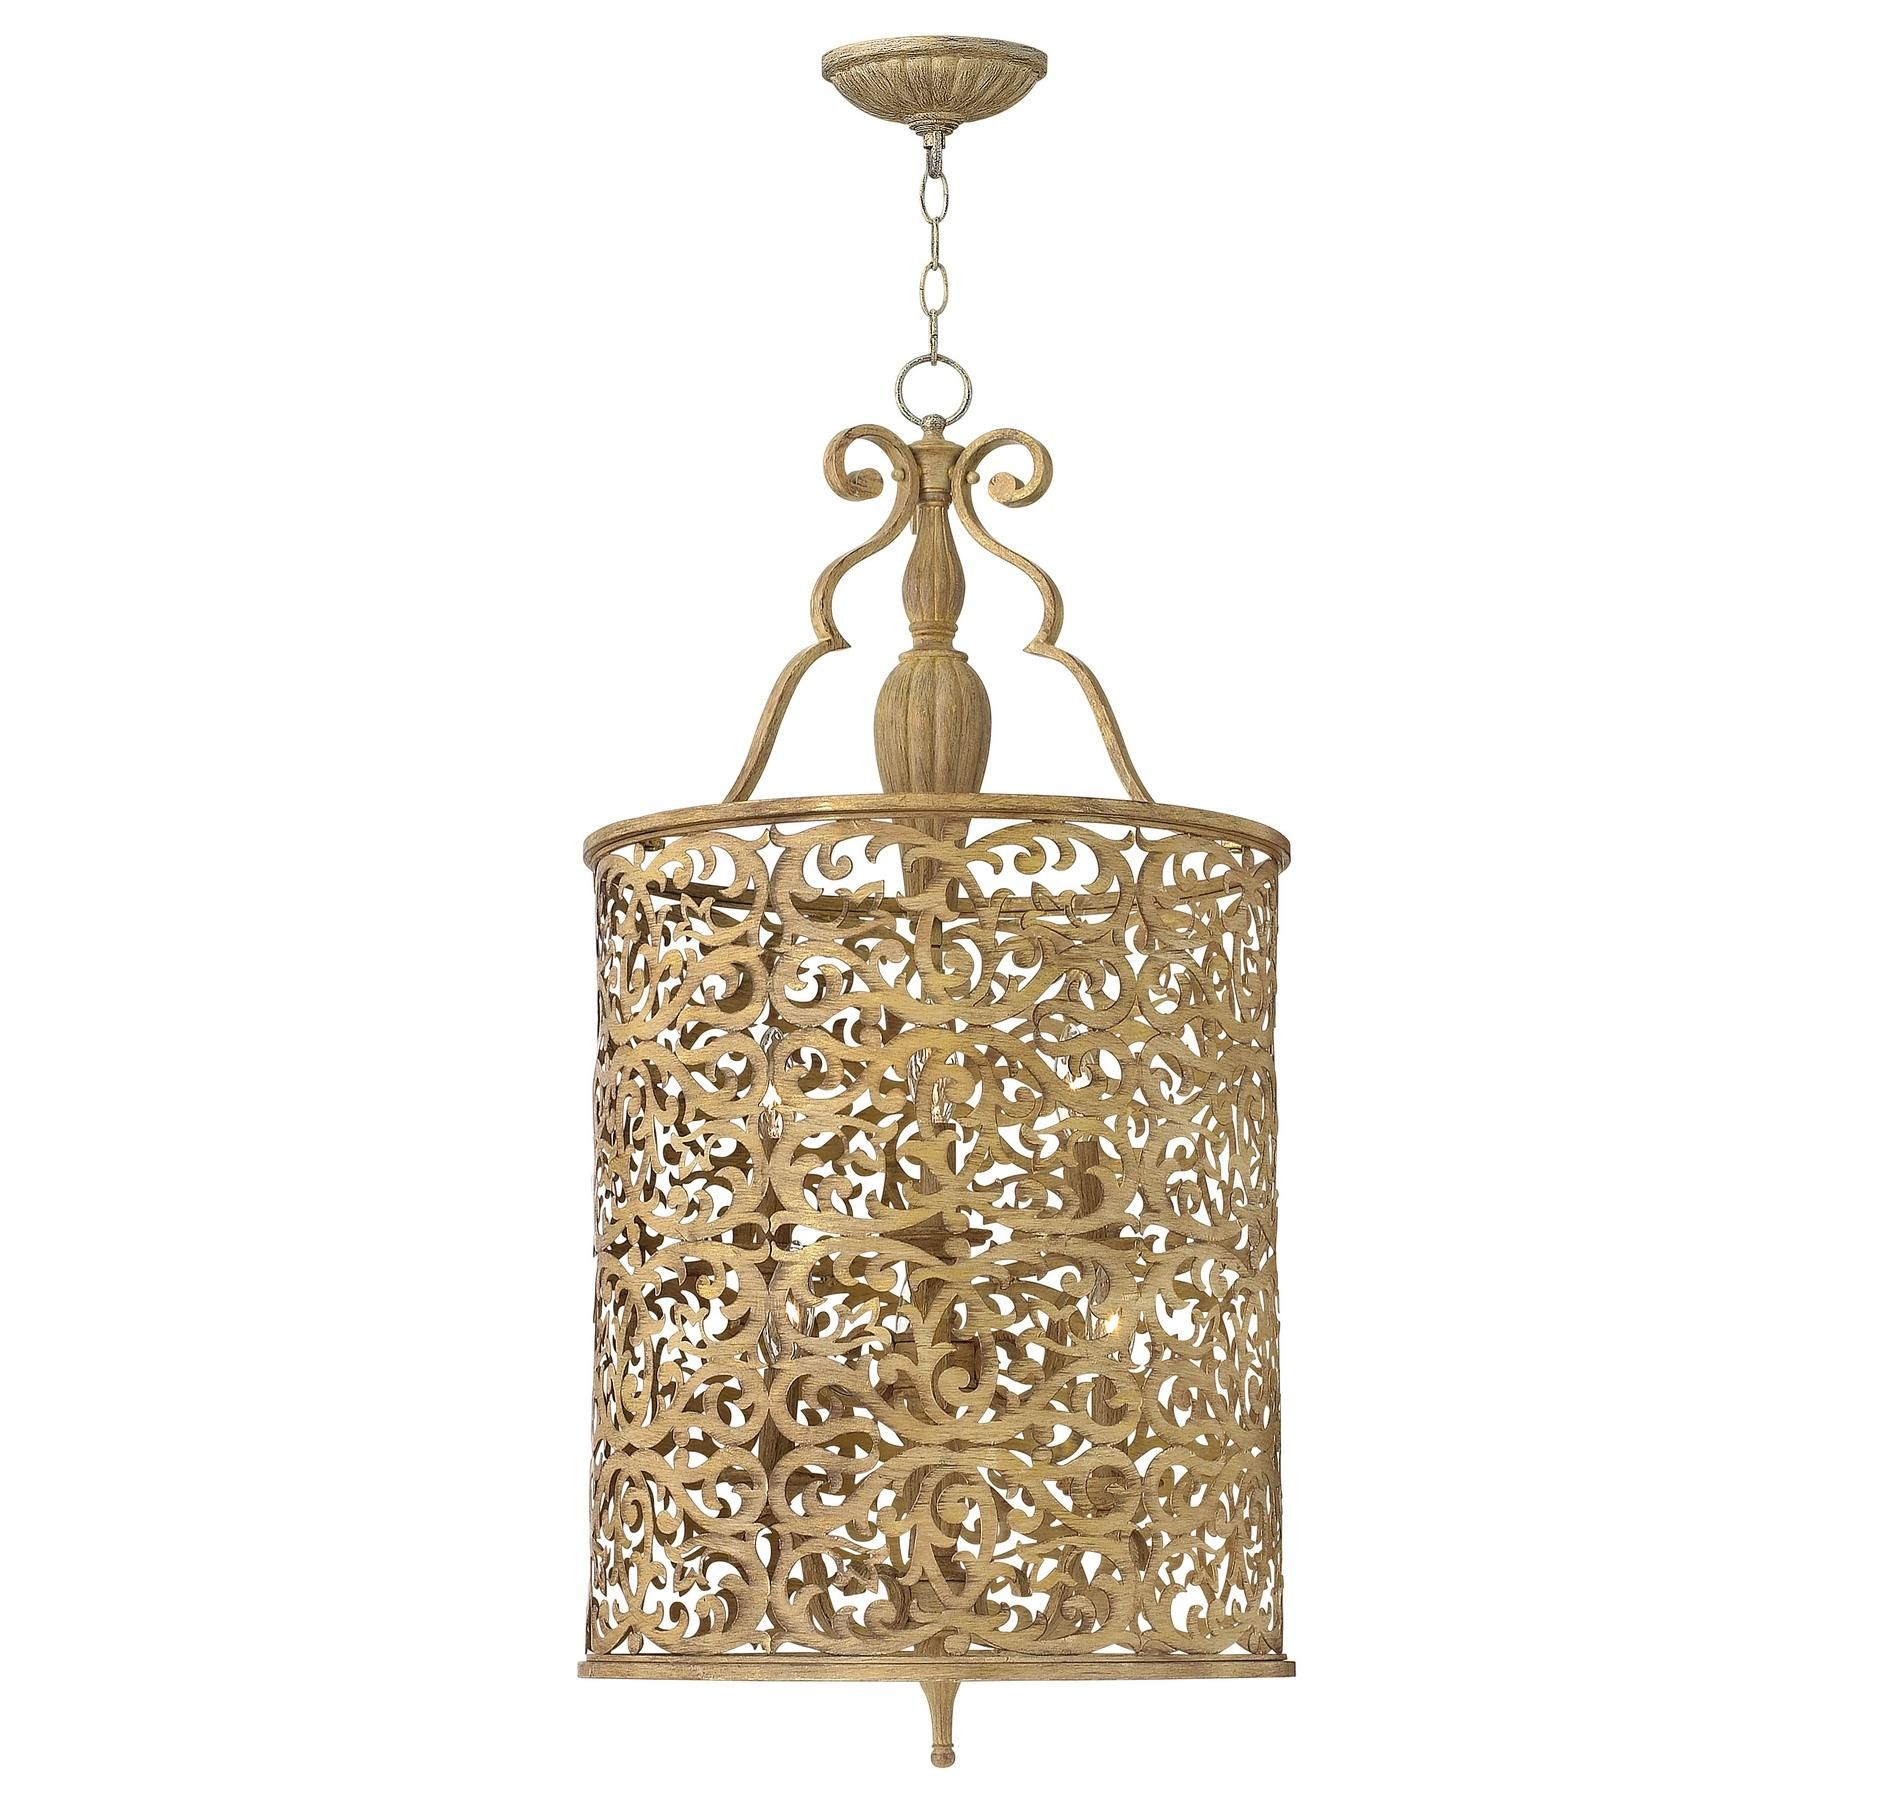 Fredrick ramond carabel lt entry light in brushed champagne finish